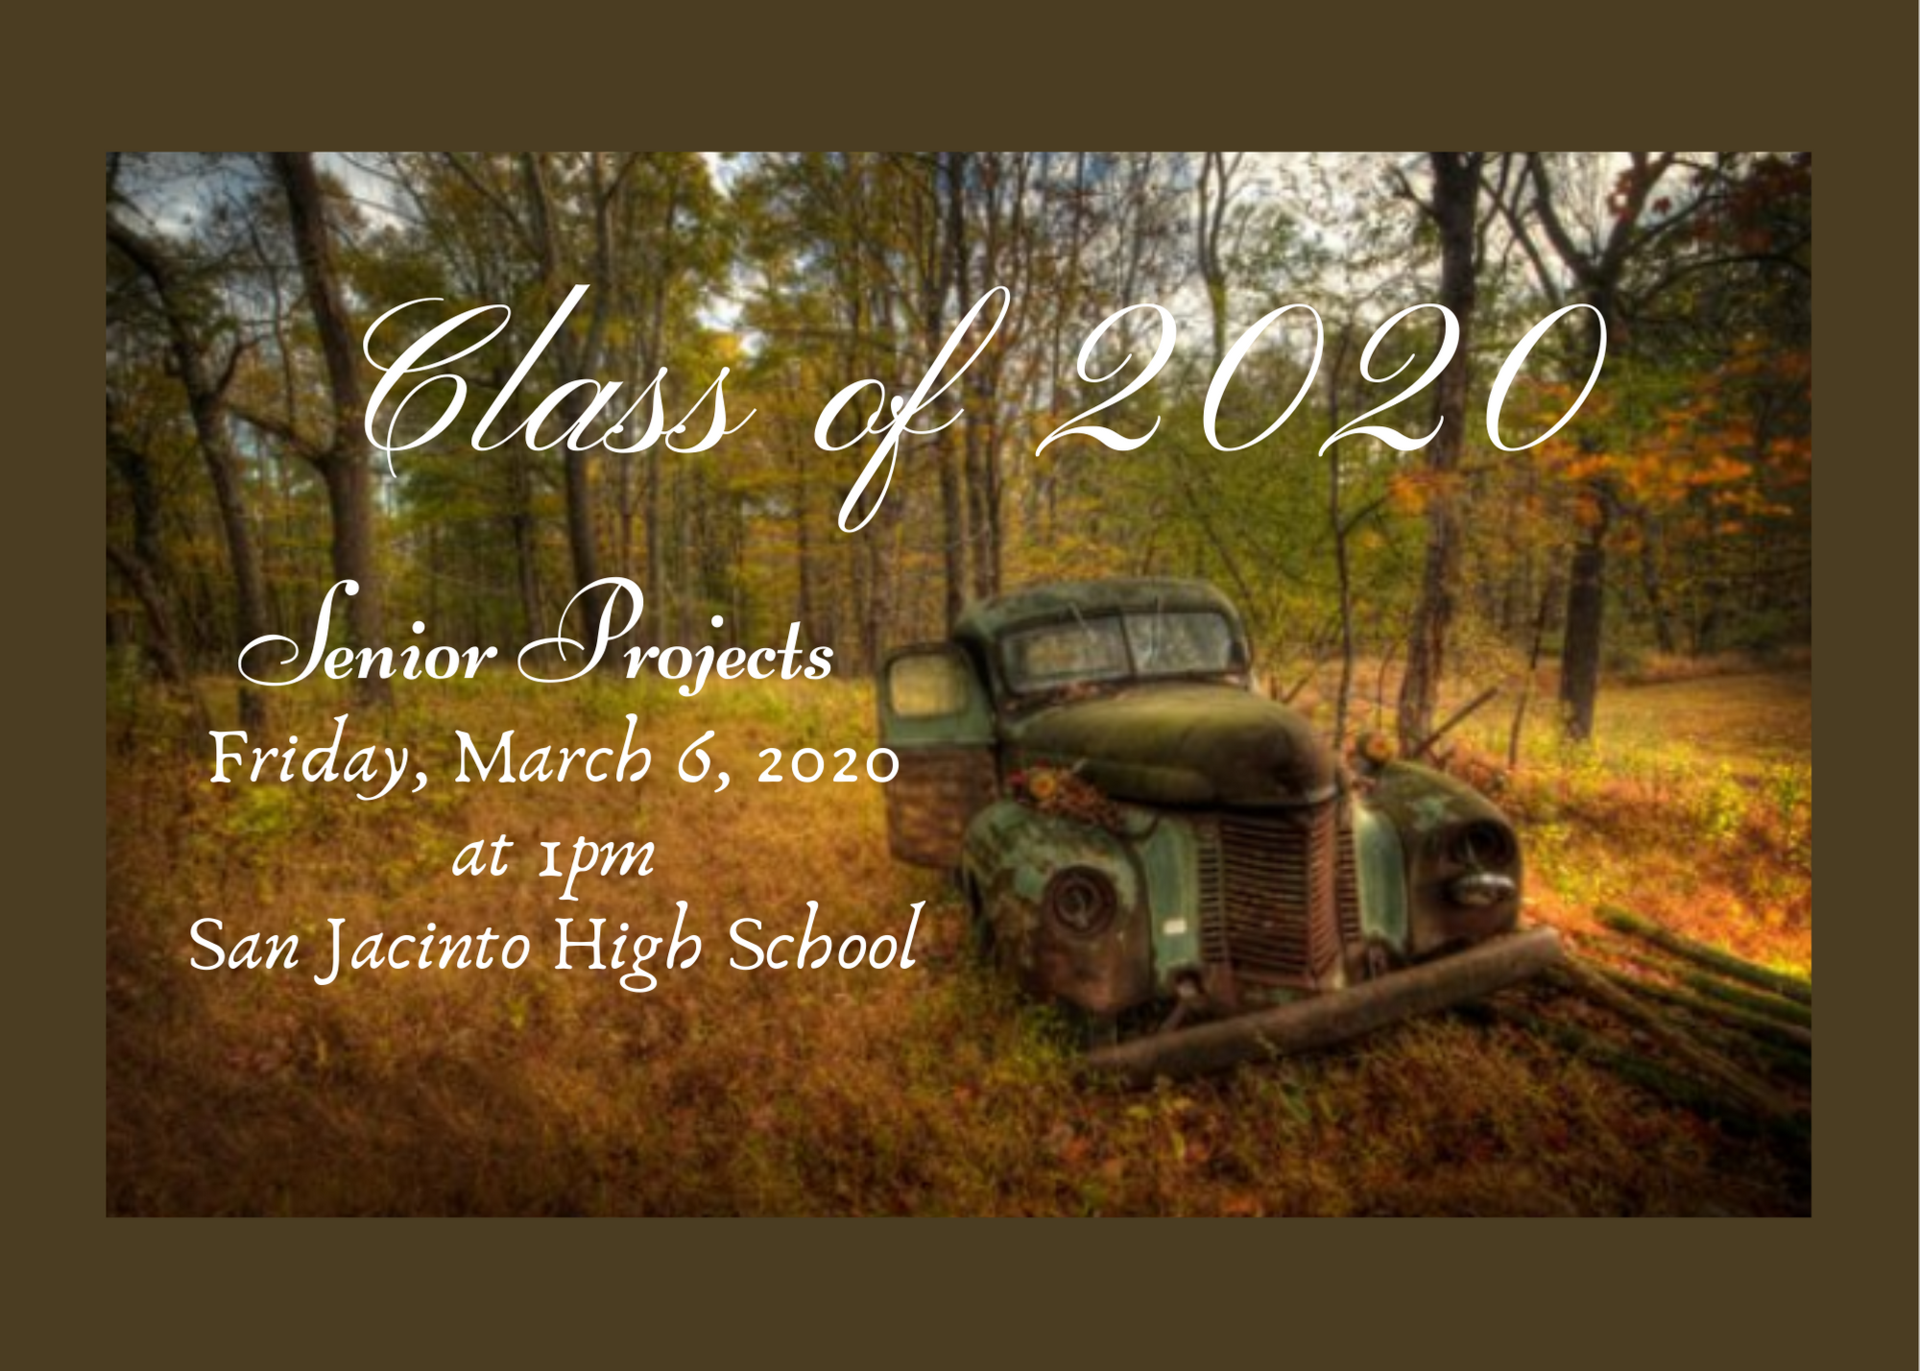 Class of 2020 Senior Projects